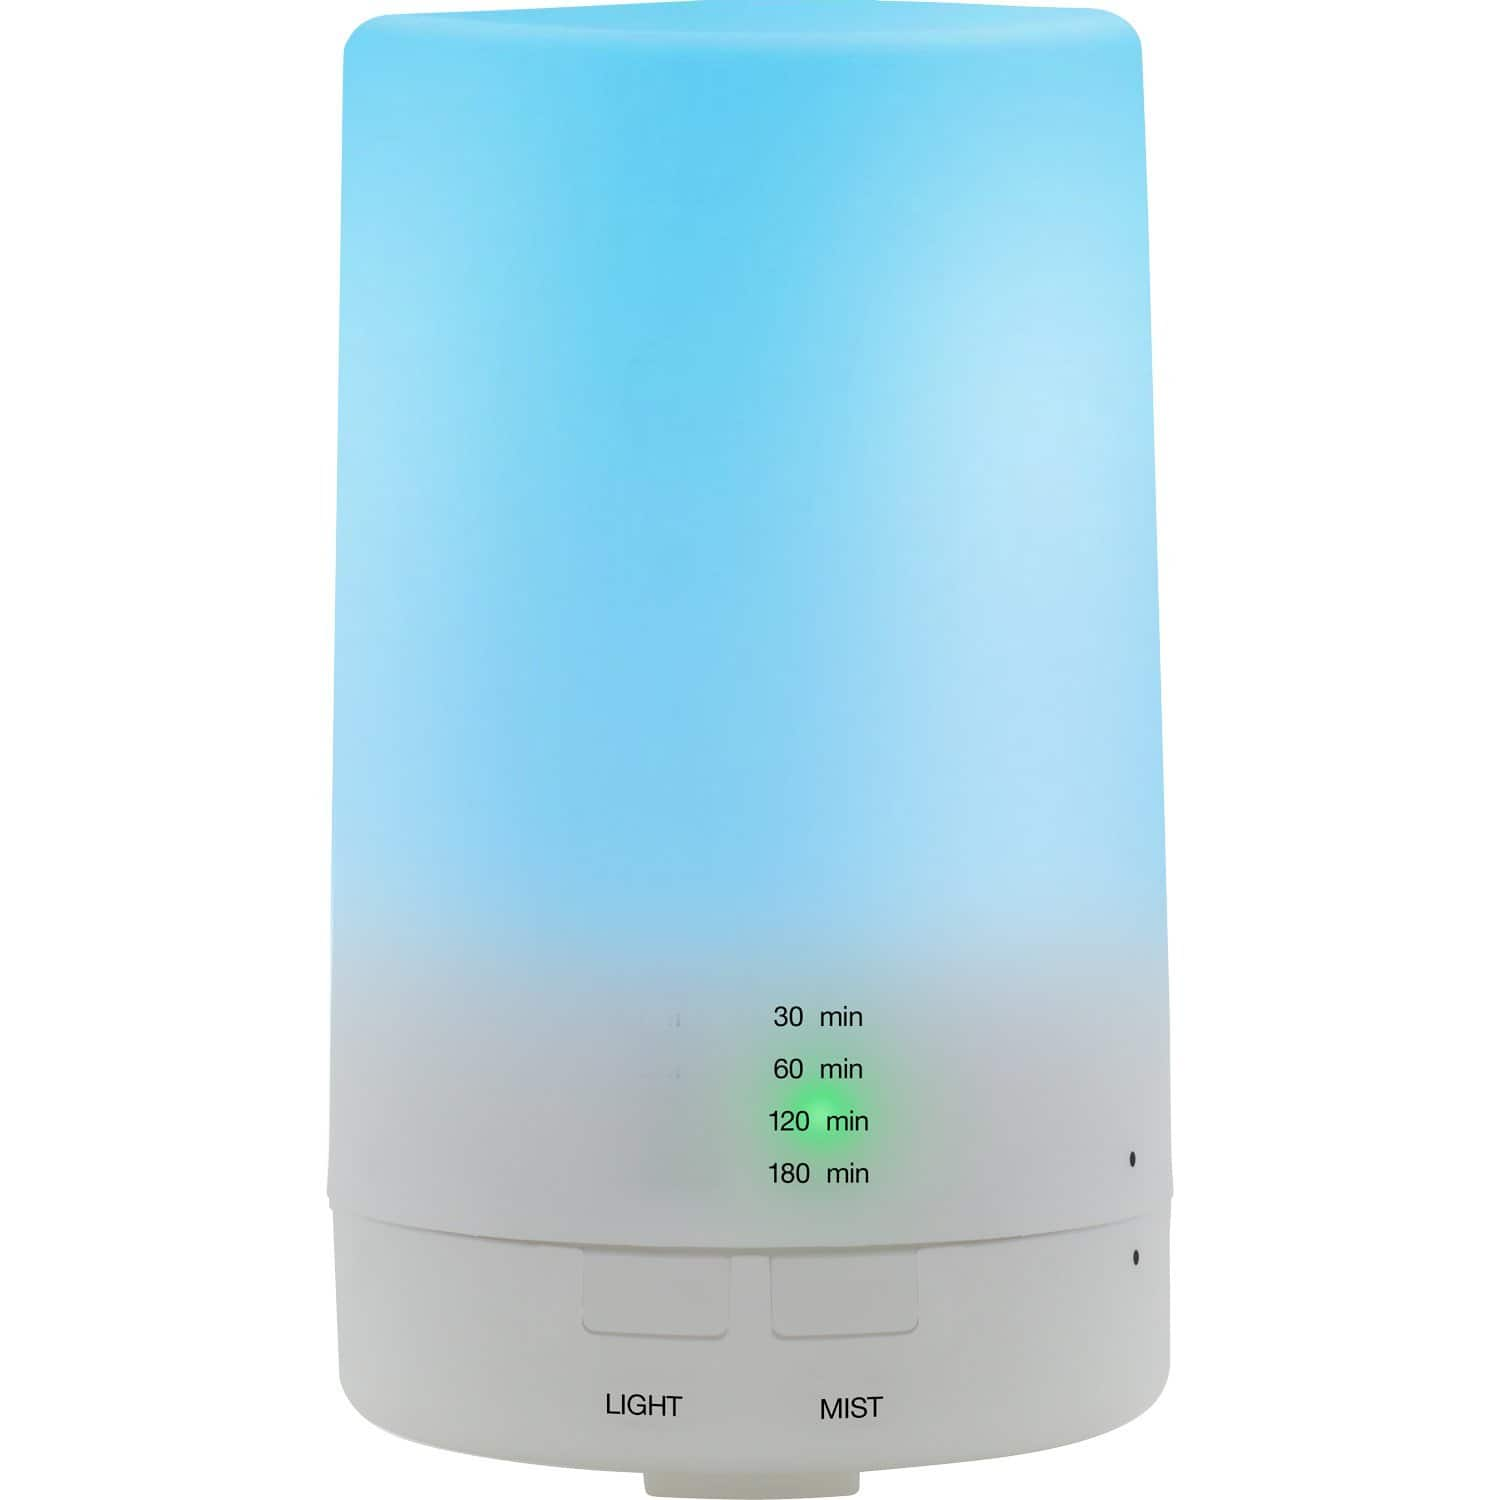 Majestic Pure 125 ml Ultrasonic Aromatherapy Diffuser - Cool Mist Humidifier with 6 Color LED - $8.07